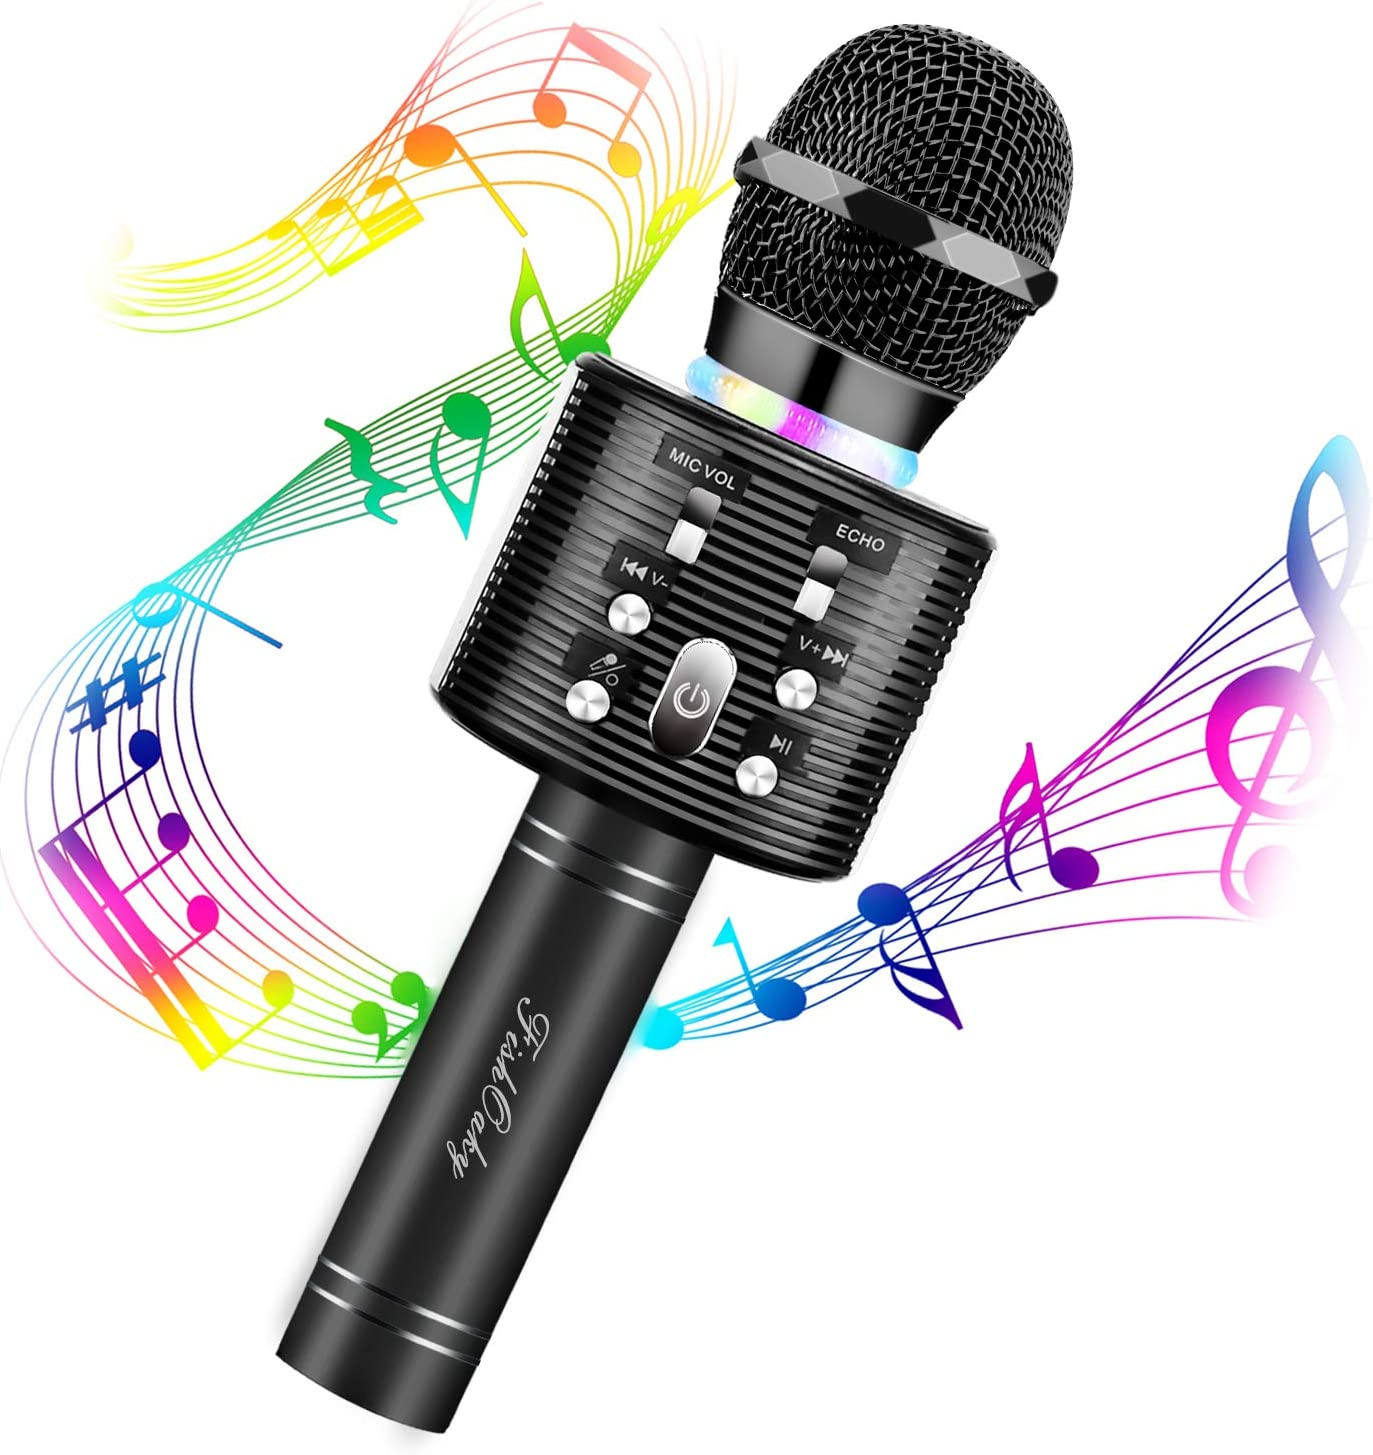 Karaoke Microphone for Kids, FISHOAKY 3 in 1 Portable Wireless Bluetooth Microphone Speaker Music Singing Voice Recording Karaoke Machine with Android/IOS for Home KTV Player Outdoor